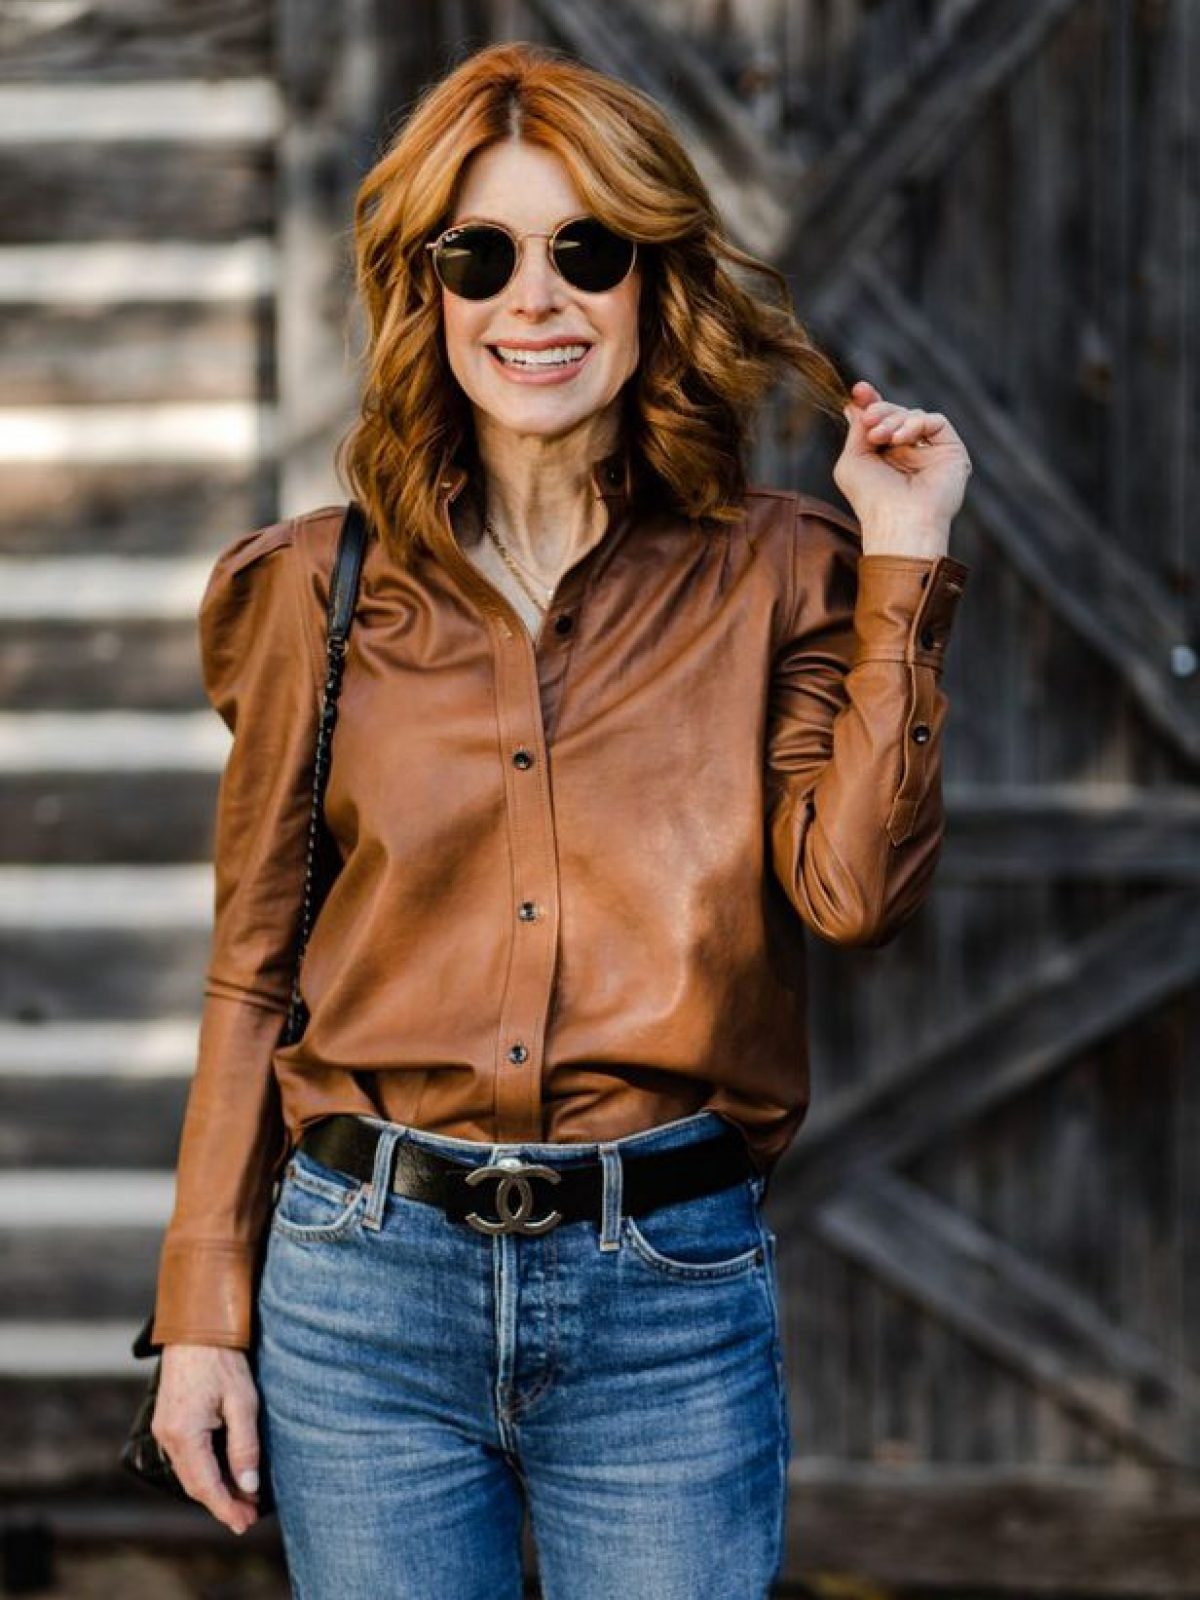 FEMININE LEATHER SHIRT AND CYBER MONDAY SALES